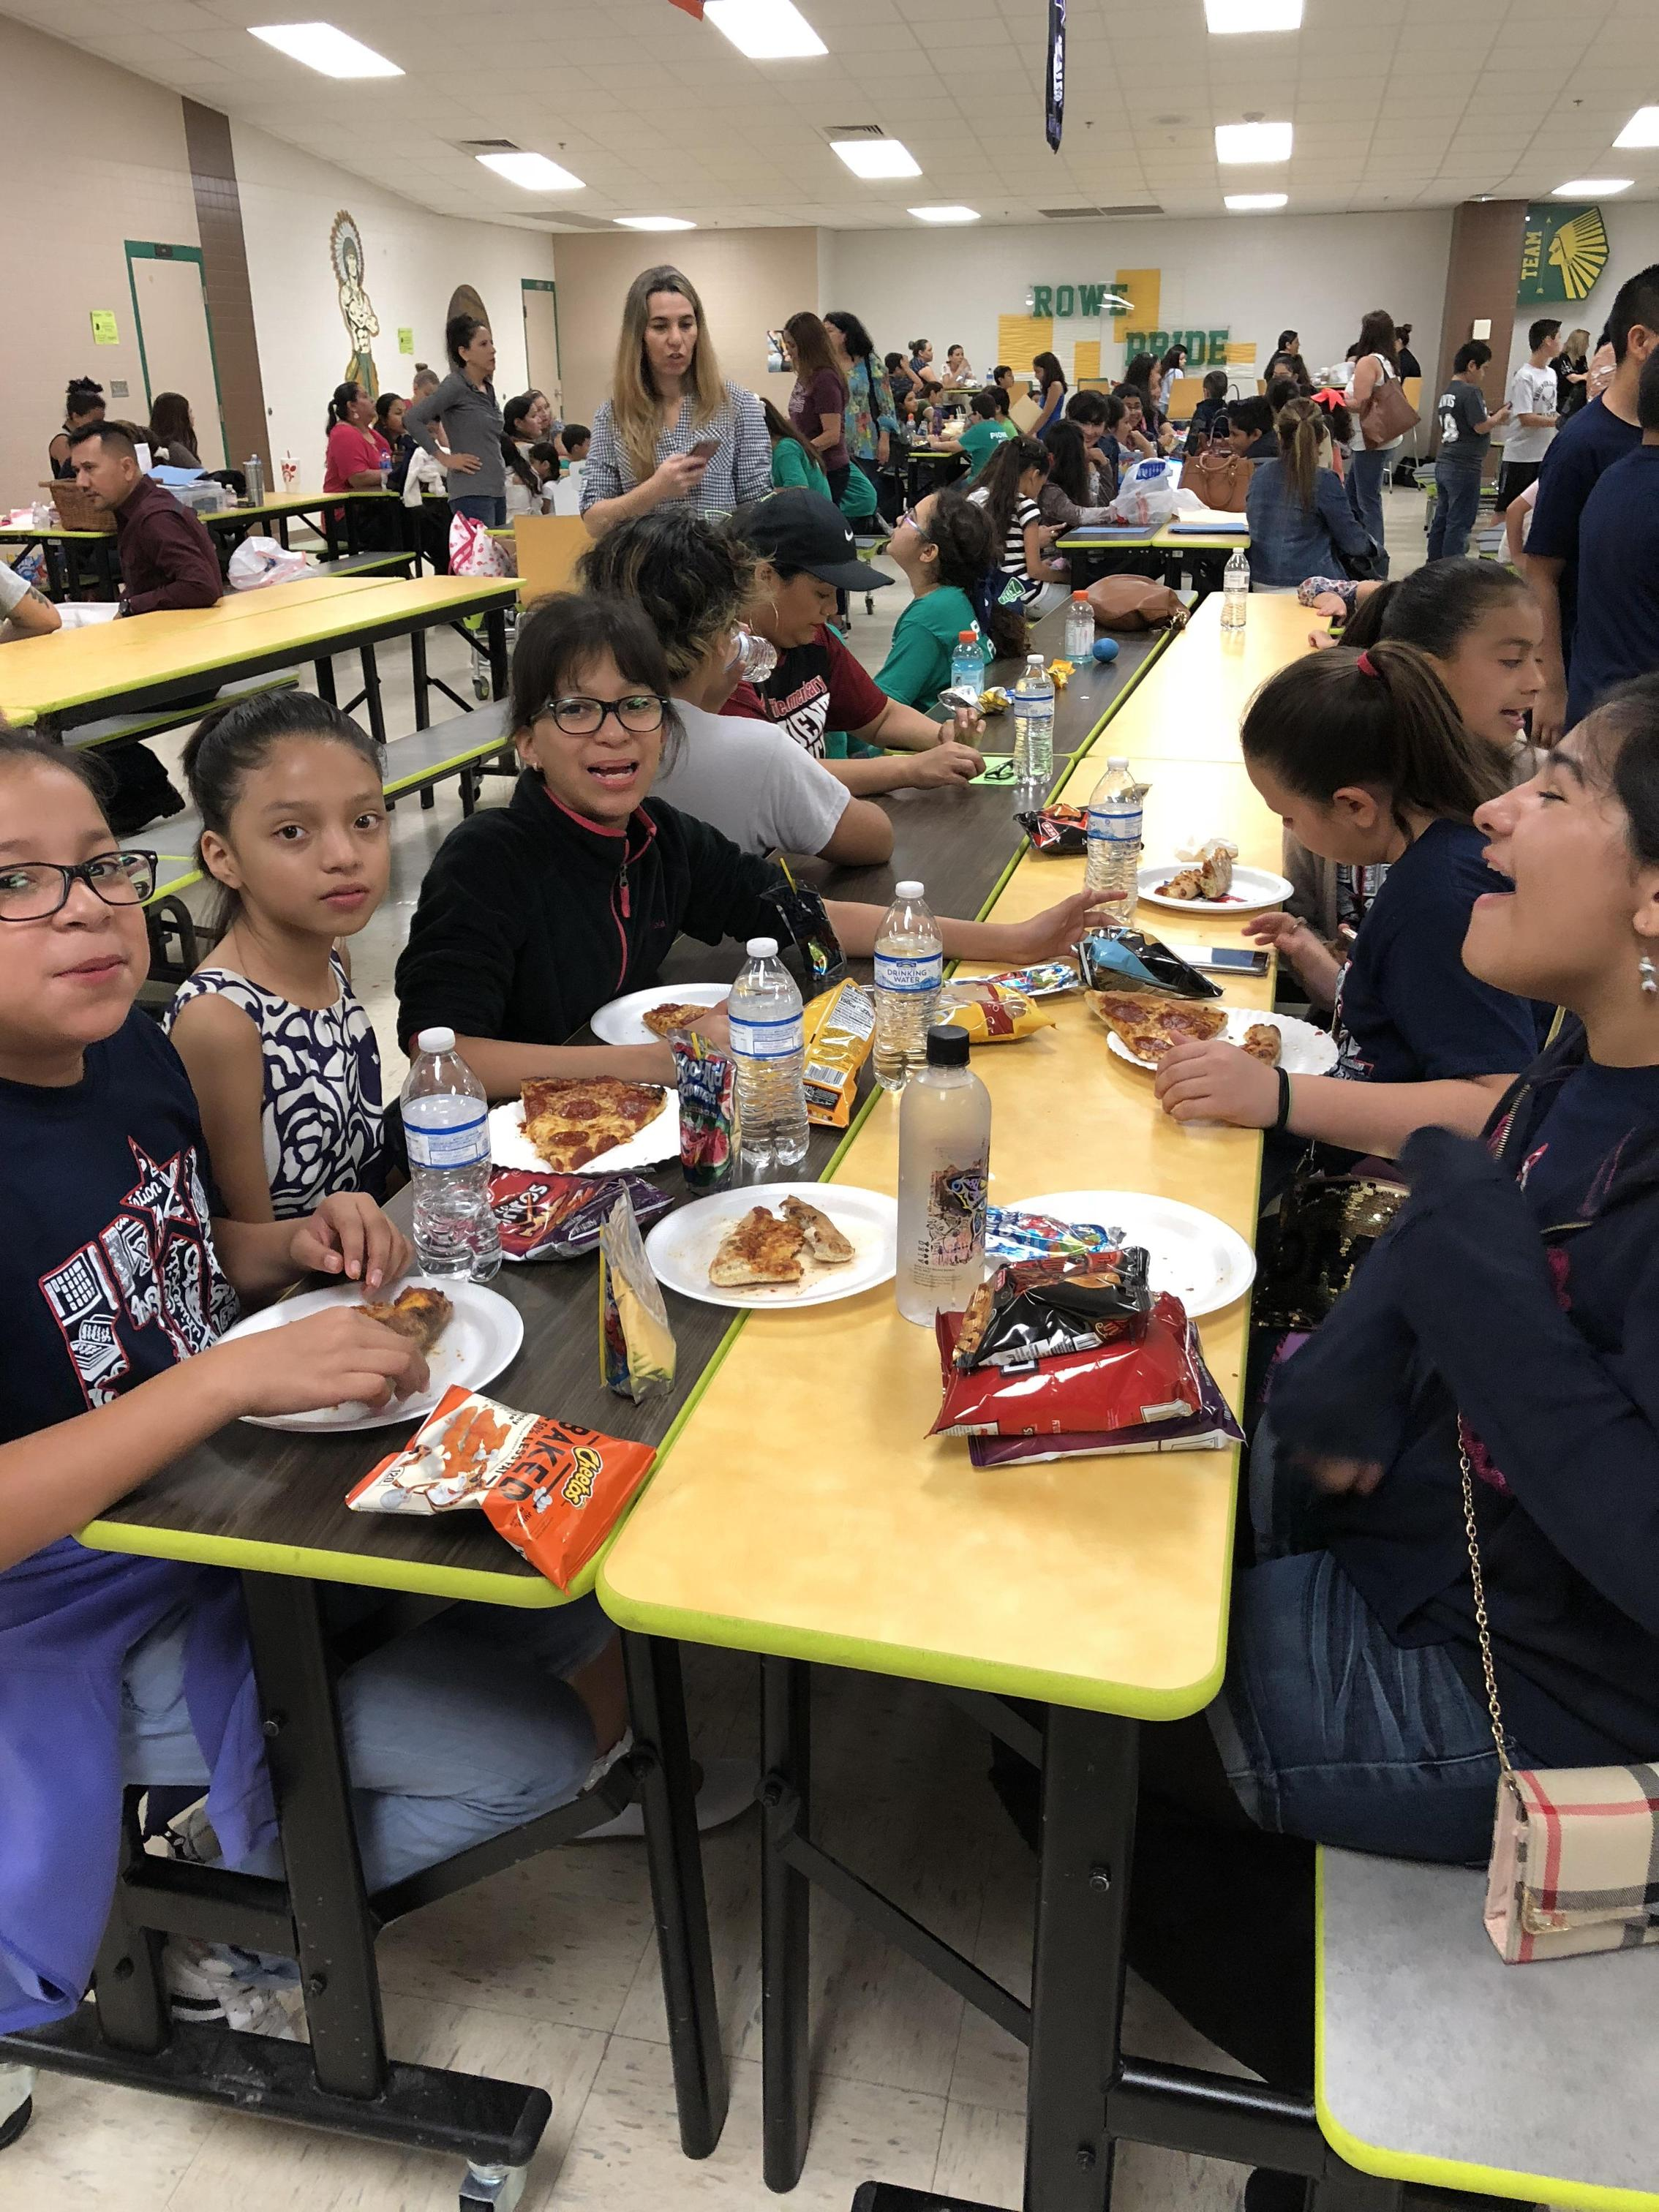 Students eating lunch in cafeteria for UIL.